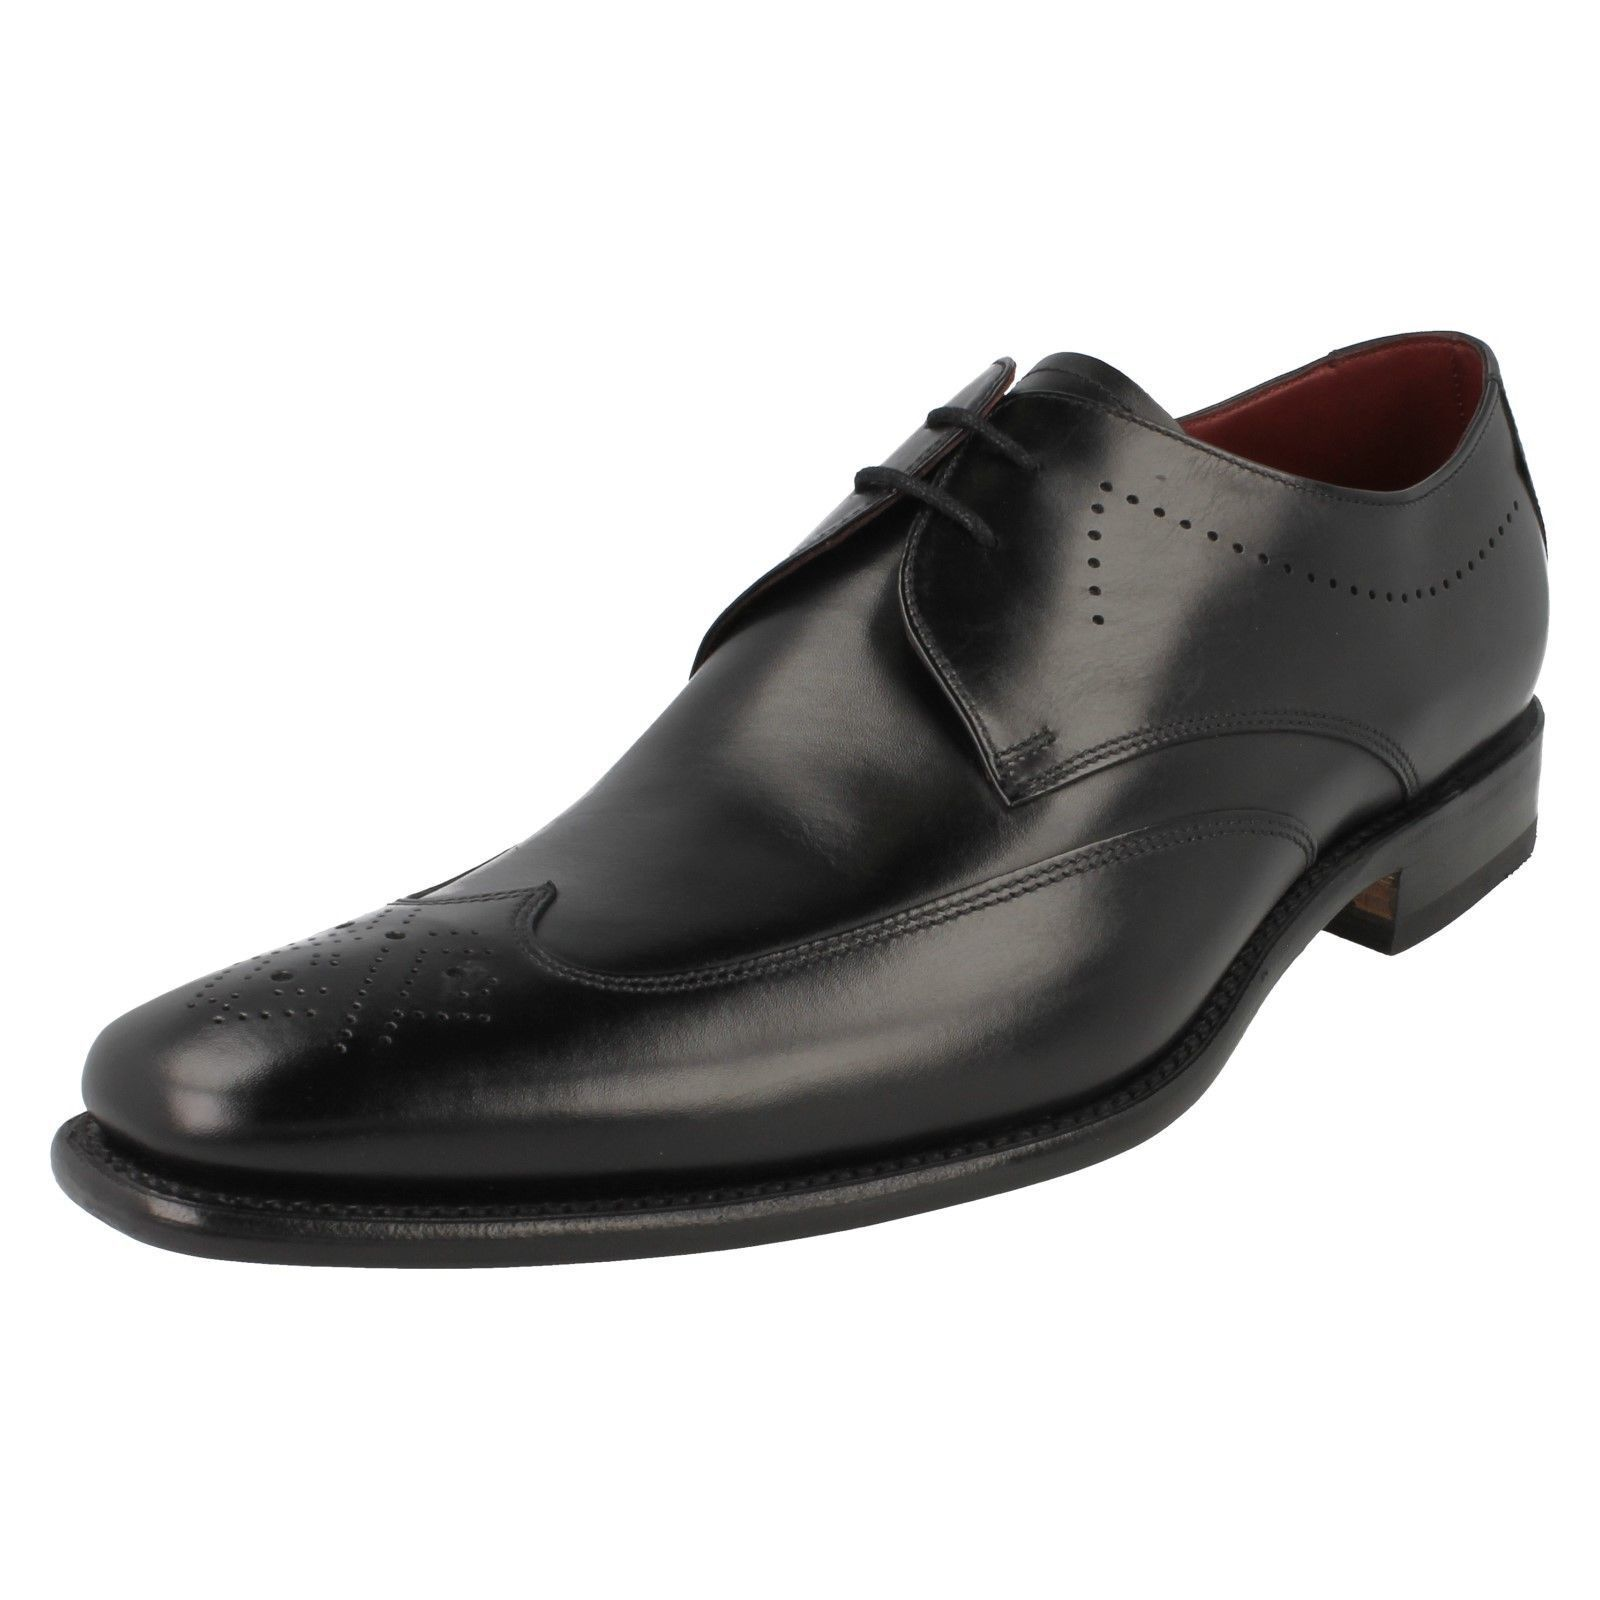 Mens Stitch black leather lace up shoes by Loake £150.00